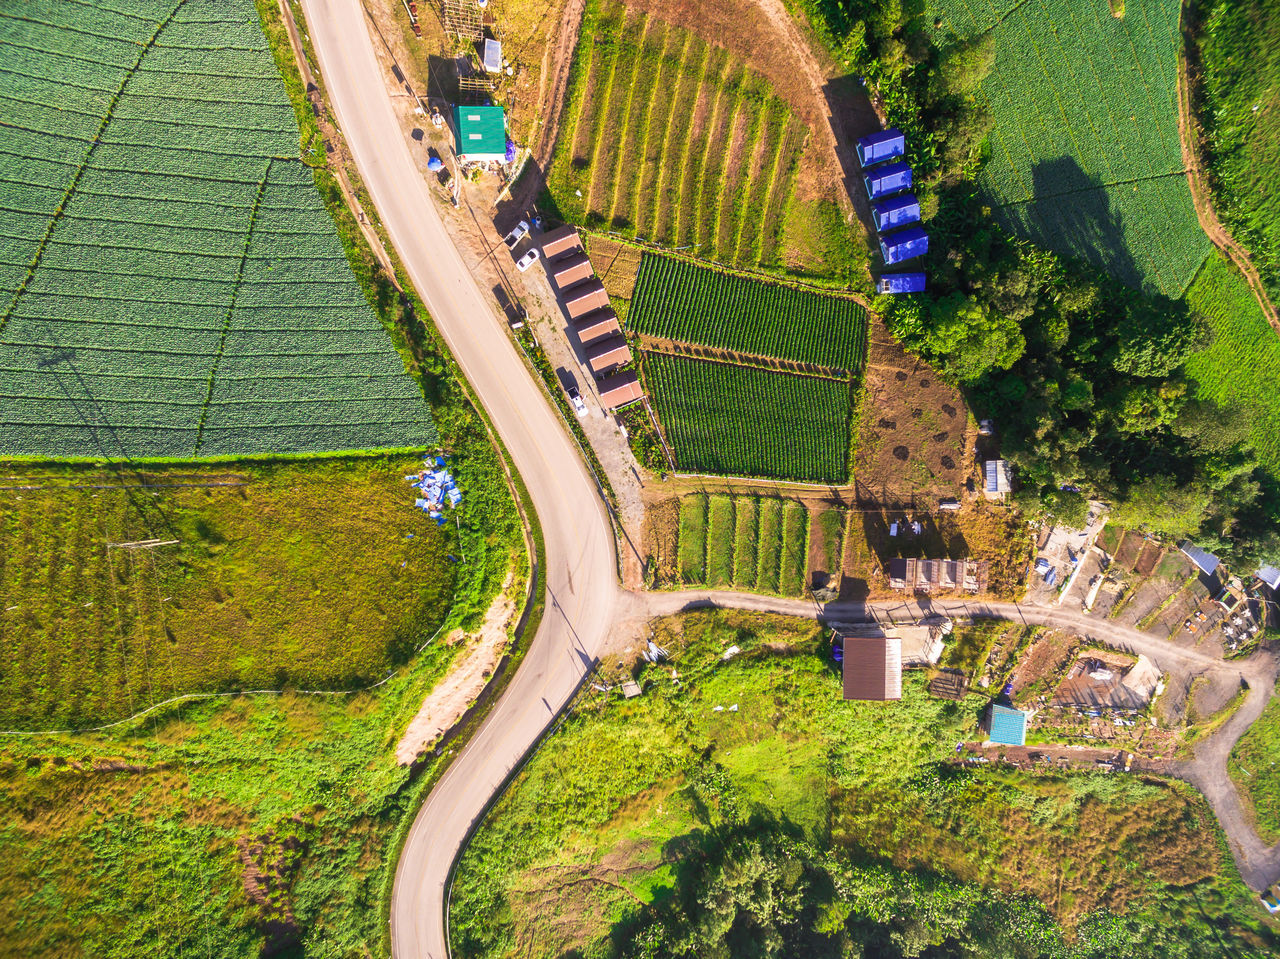 aerial view Agriculture Architecture City Cityscape cultures day Drone Fame Grass Green color Growth hot air balloon landscape Modern Nature no people outdoors Road rural scene Transportation Travel travel destinations Tree